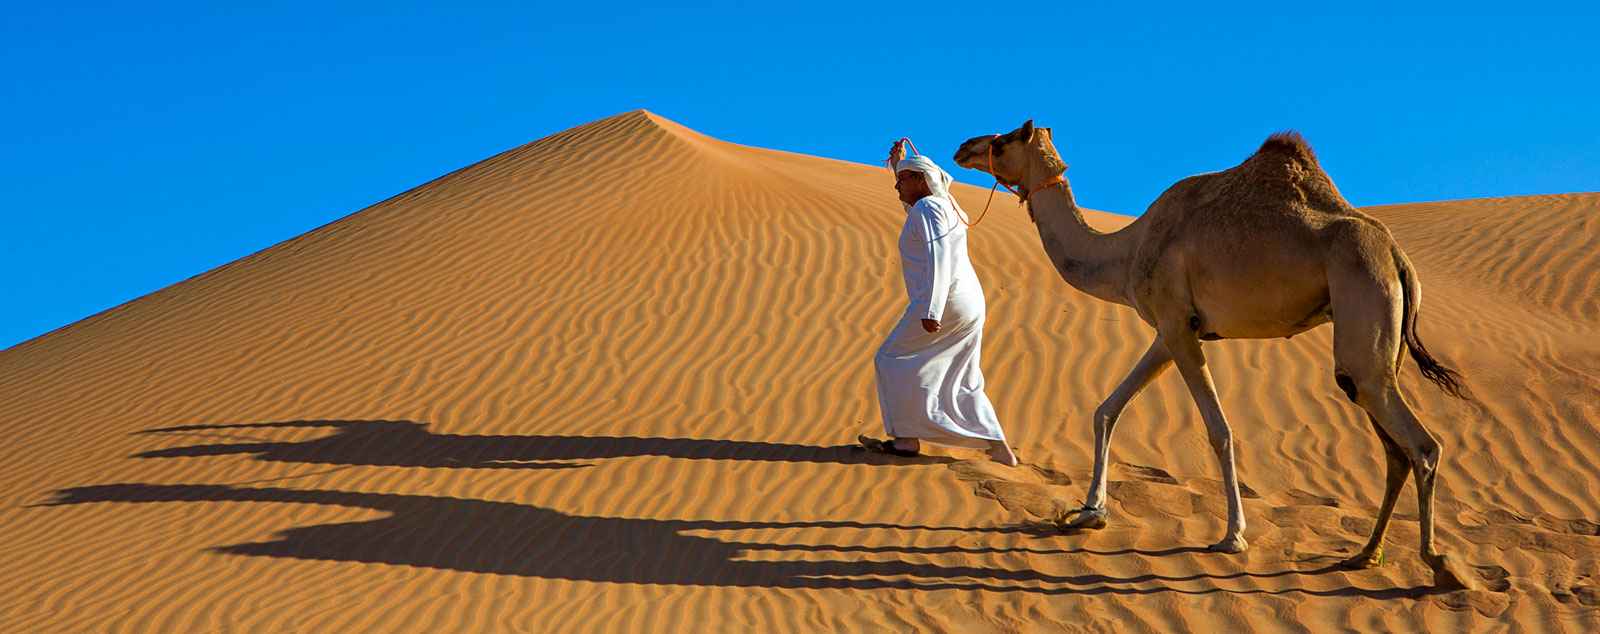 An Arabian man in traditional white robes leads a camel through a yellow sandy desert